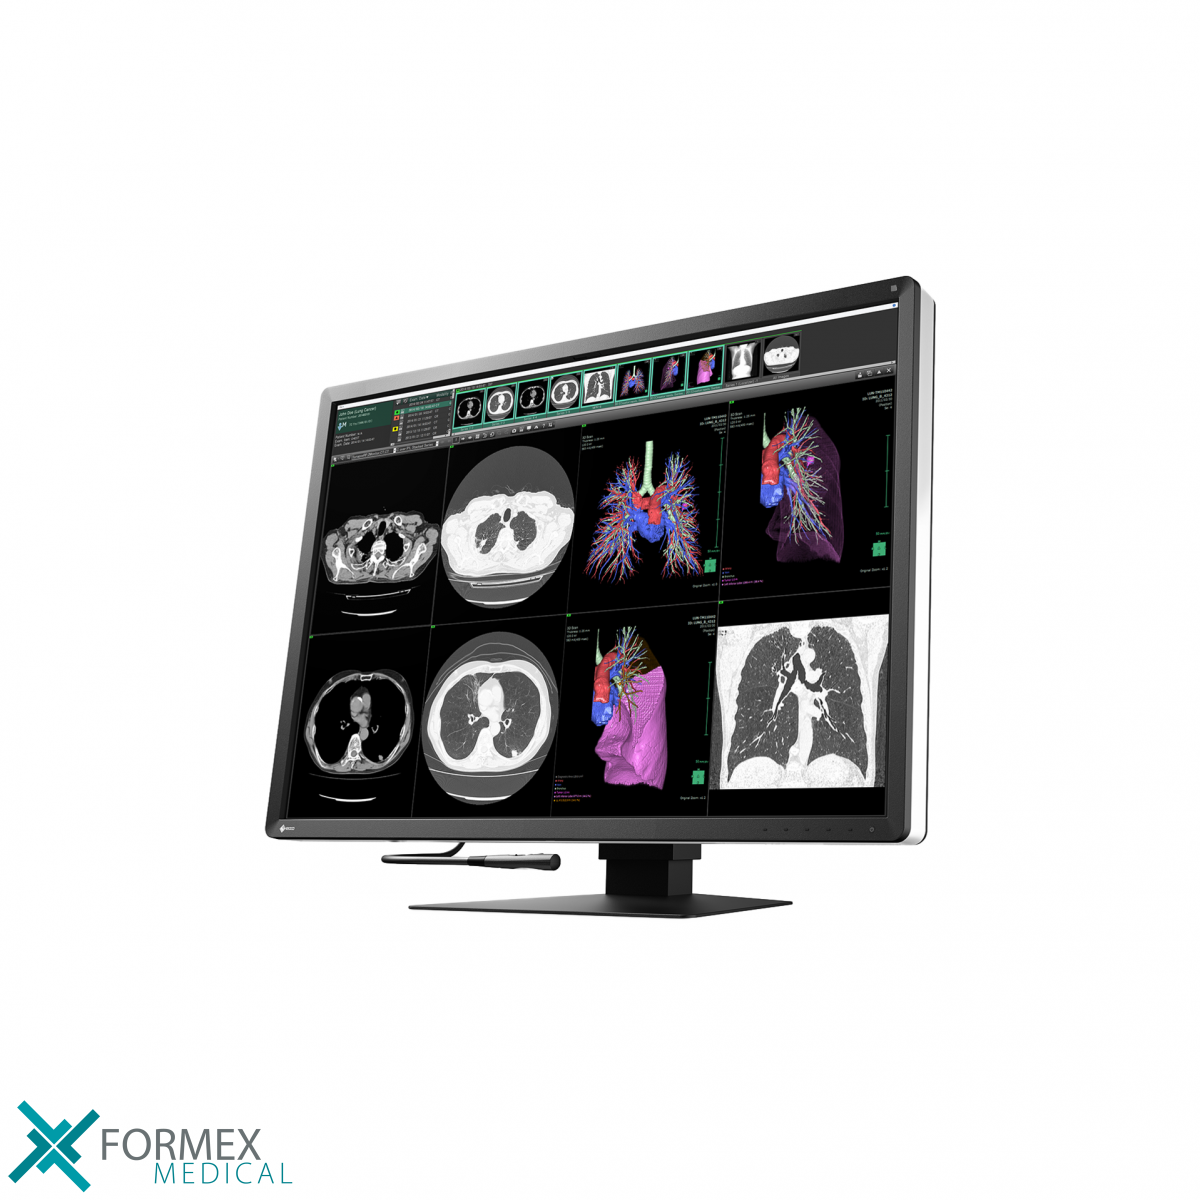 eizo monitor, medical displays, medische schermen, eizo medical monitor, medische monitoren, eizo medical, medische beeldschermen, diagnostische monitoren, diagnostiek monitoren